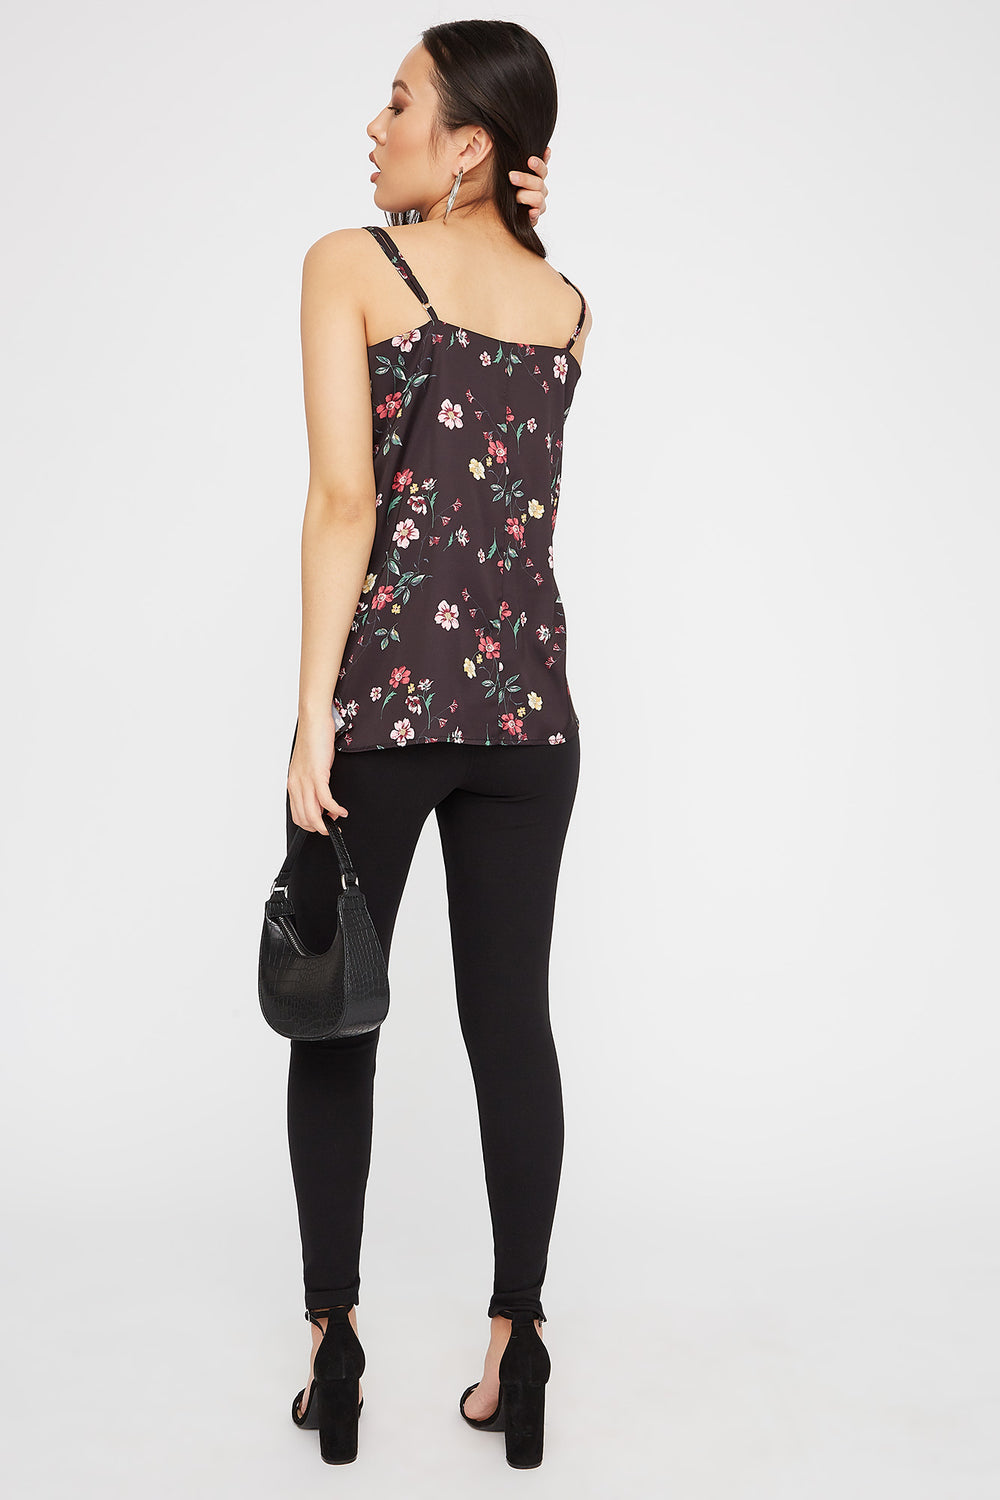 Satin Floral V-Neck Cami Black